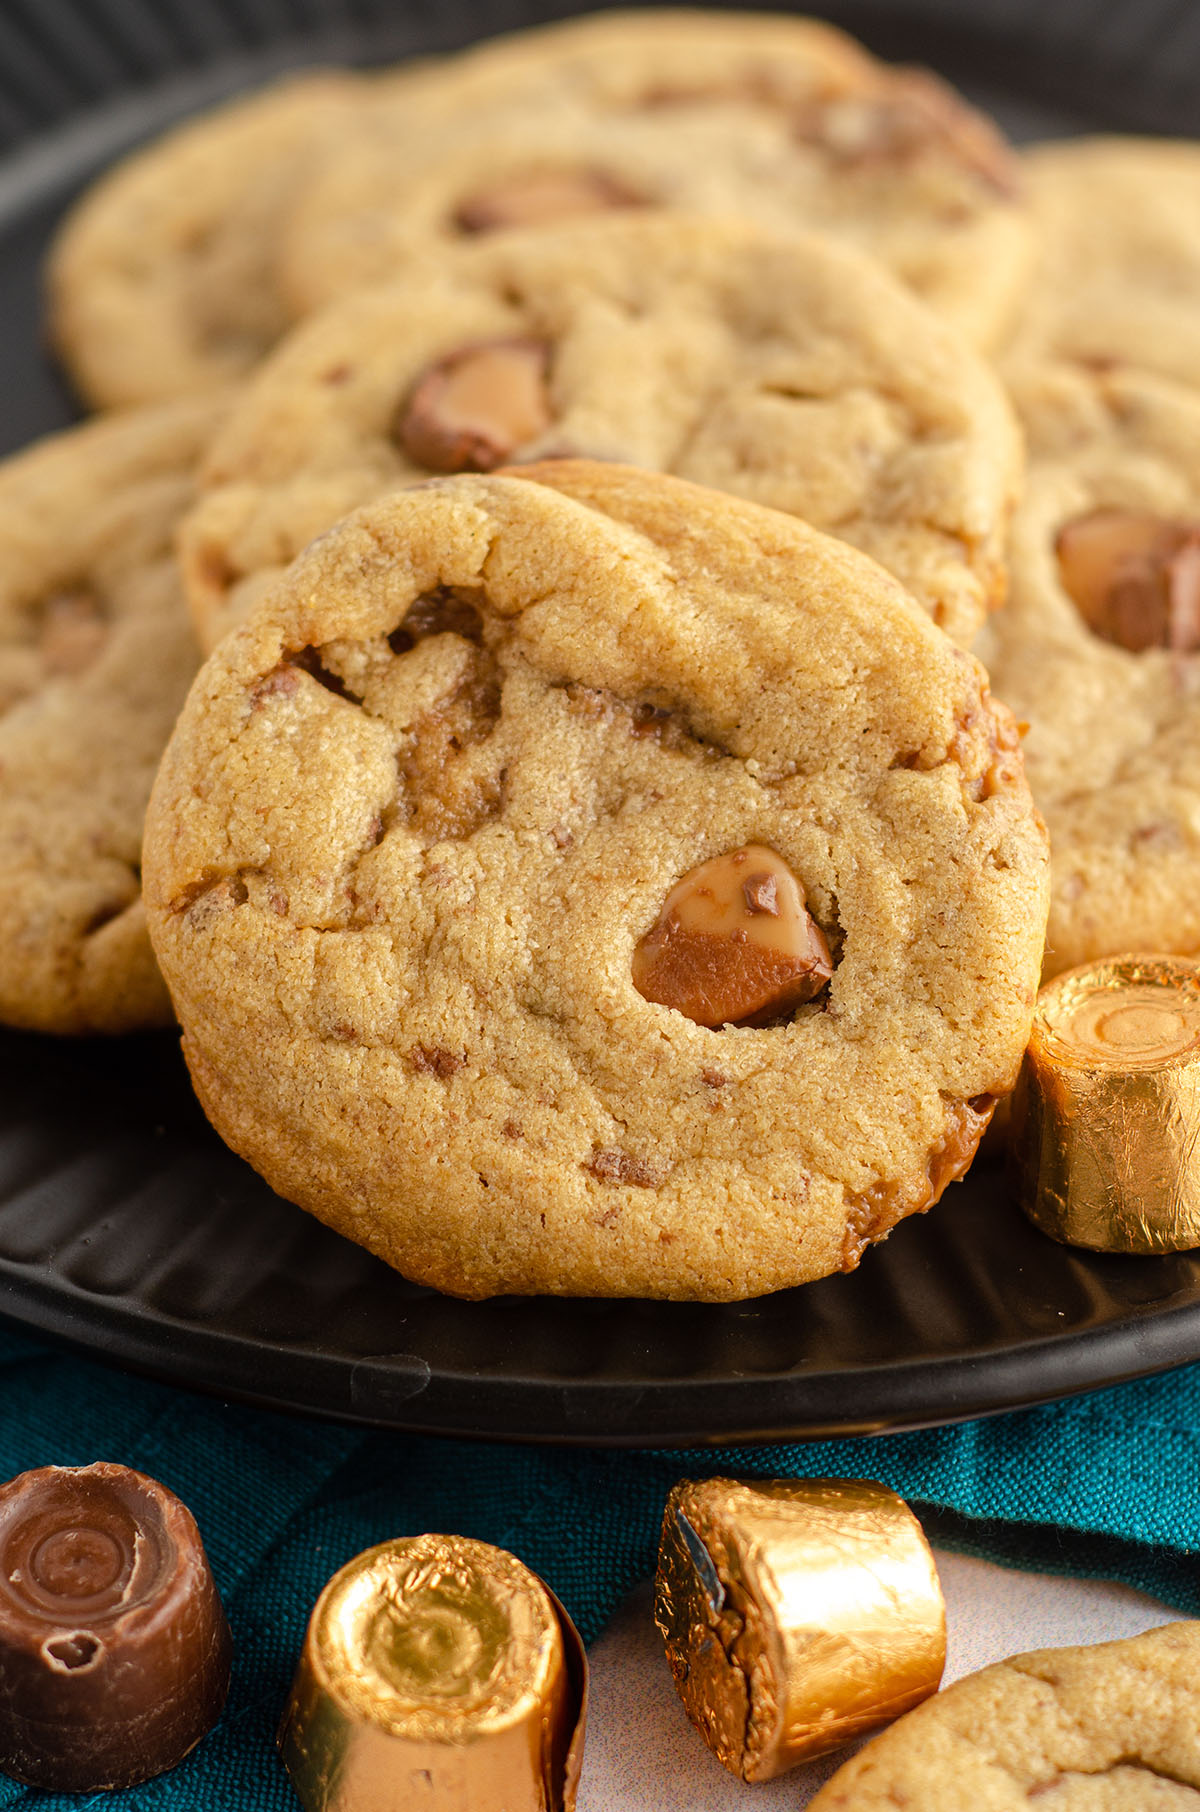 peanut butter rolo cookies on a black plate